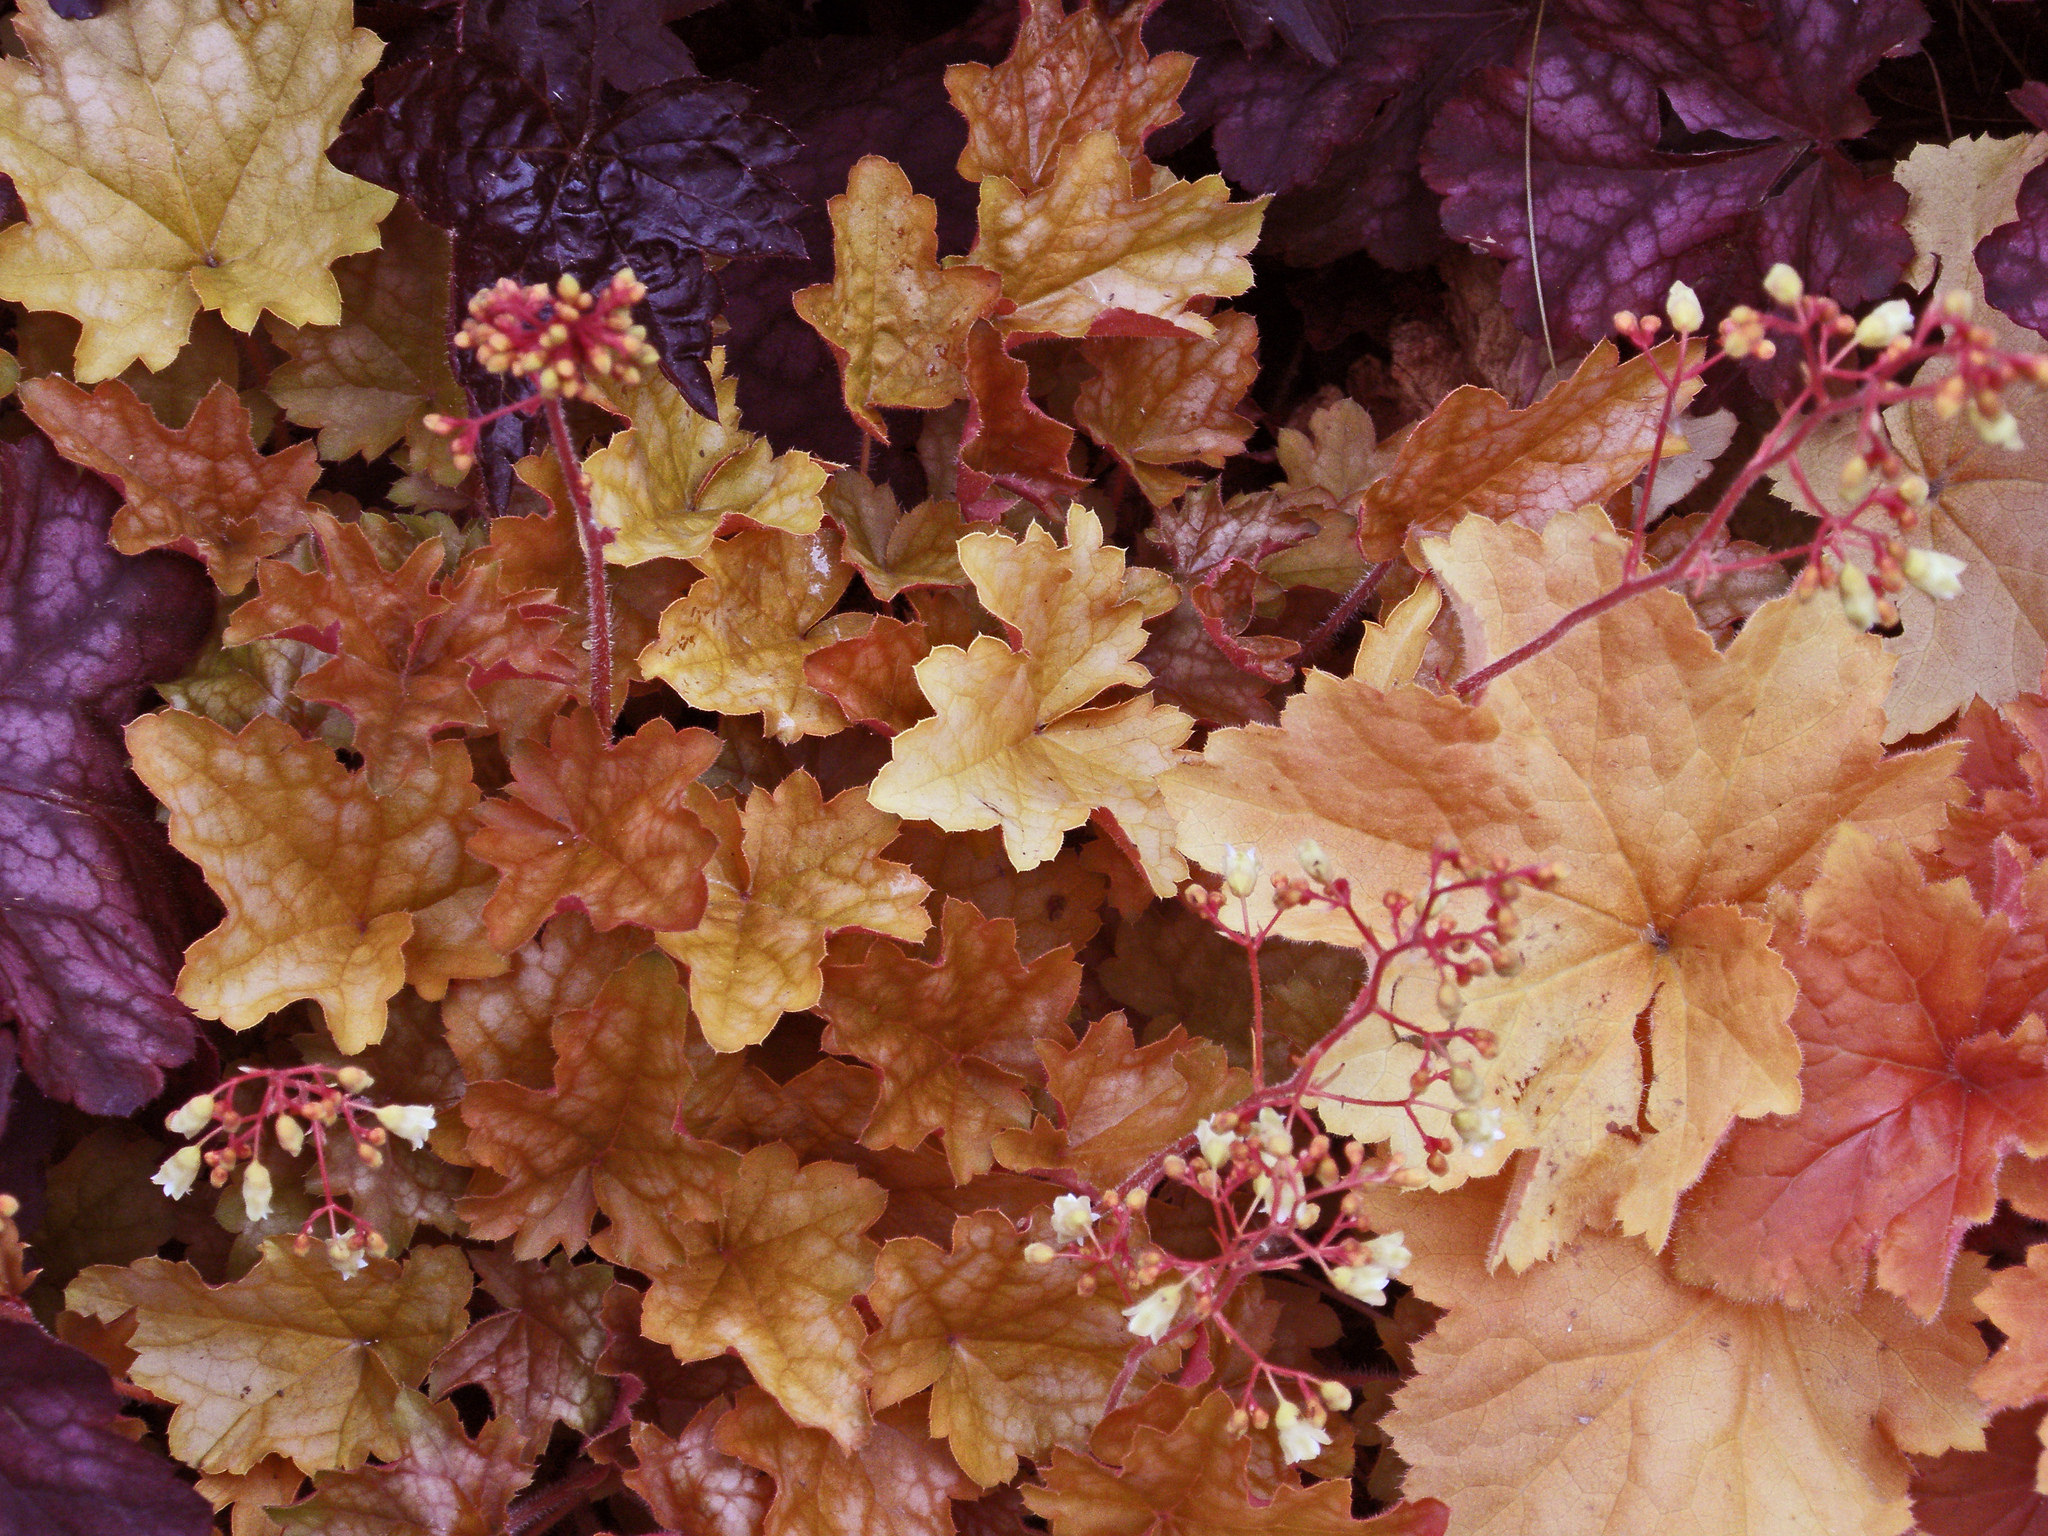 Heuchera photo courtesy of Flickr cc/Amanda Slater